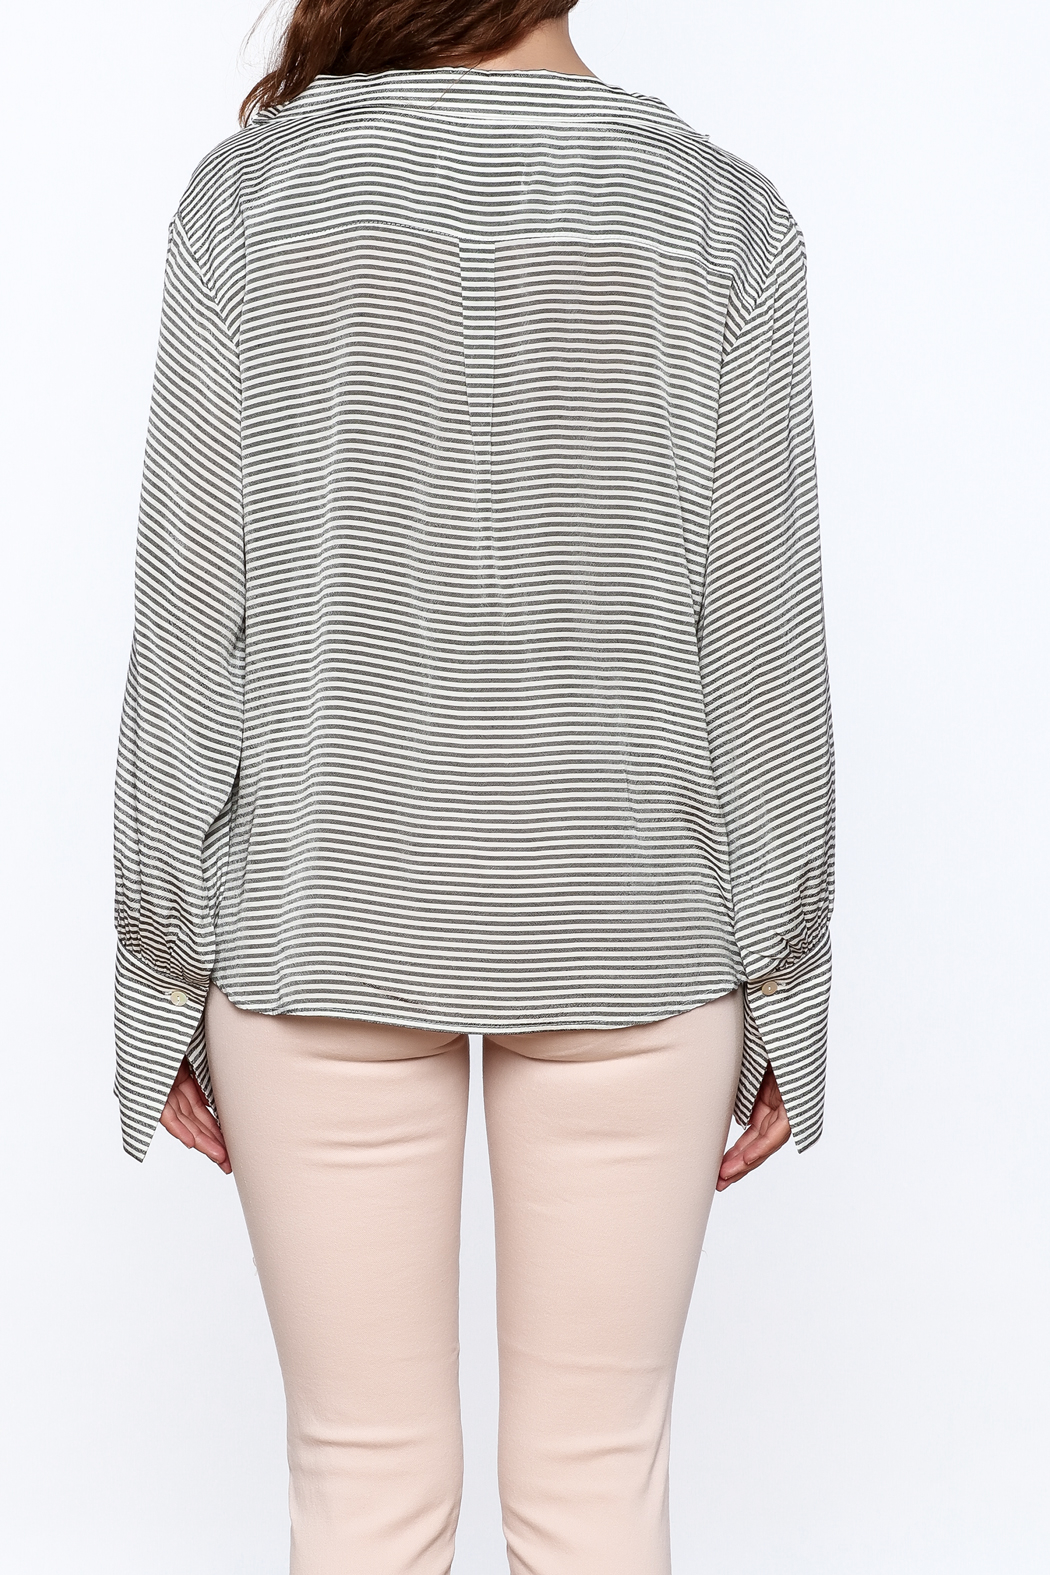 Pinkyotto Preppy Striped Pullover Top - Back Cropped Image